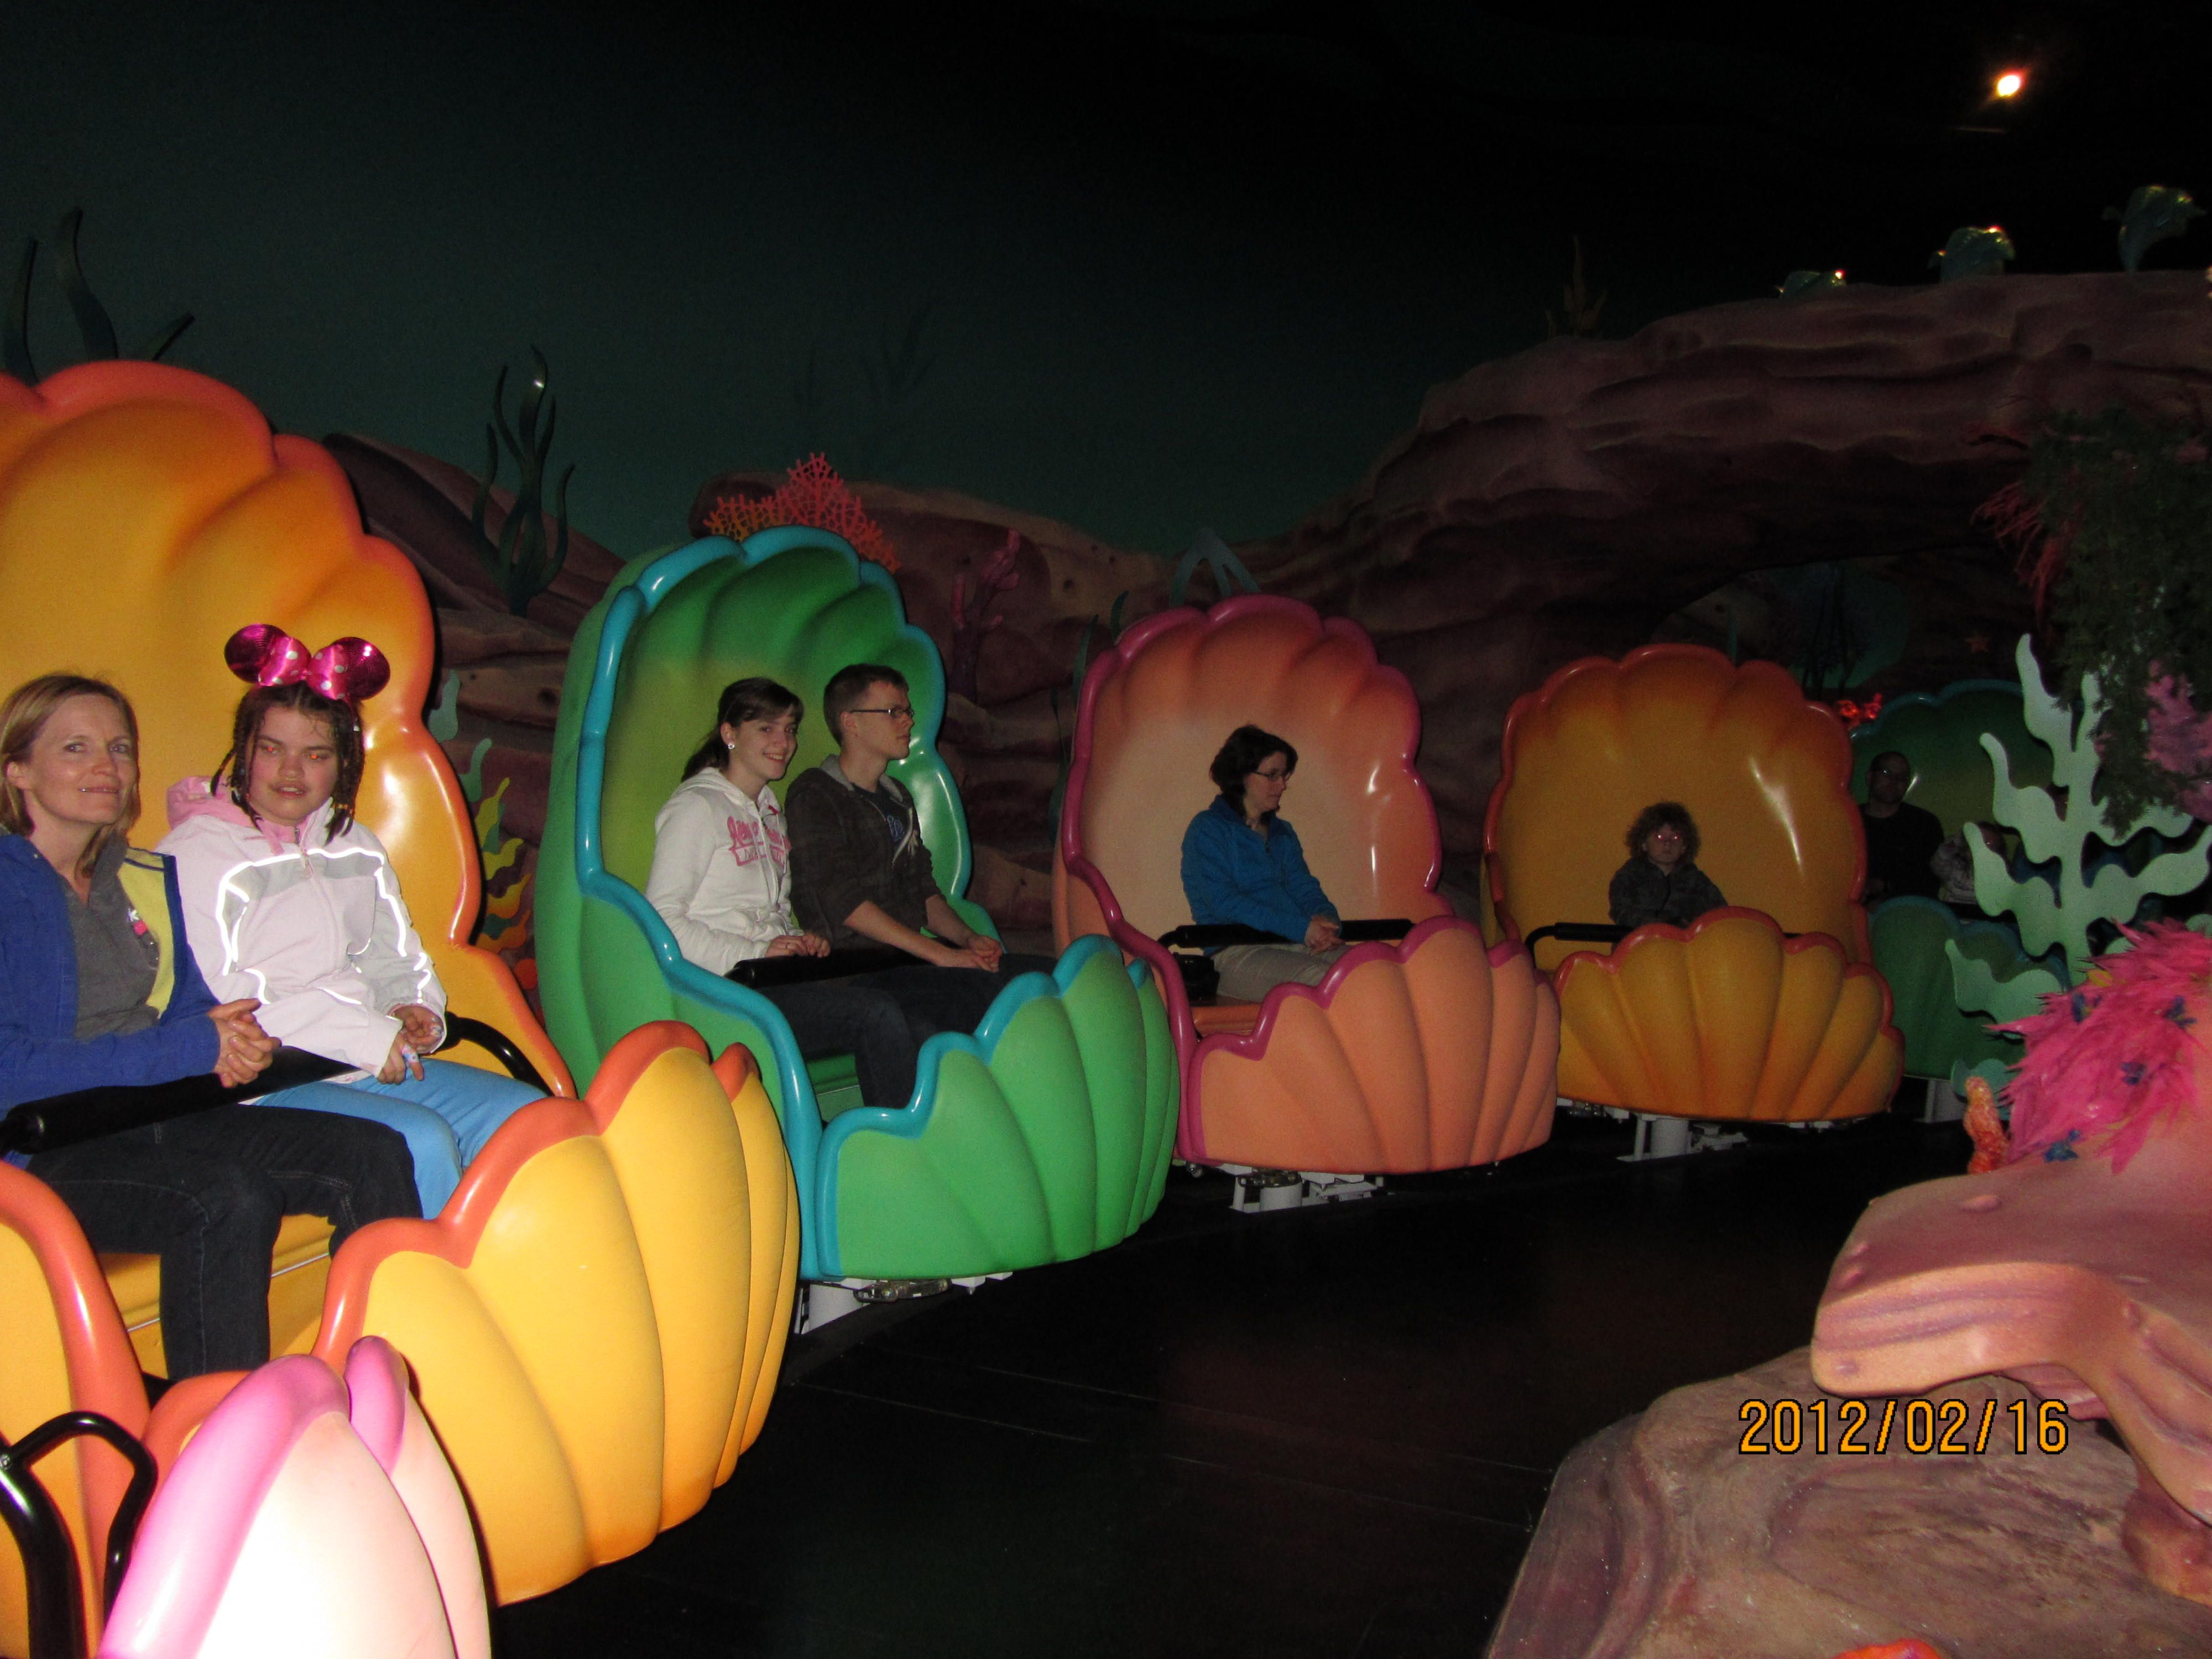 Vintage carnival ride www imgarcade com online image arcade - Disney World Ride Idk What It Is But Looks Fun